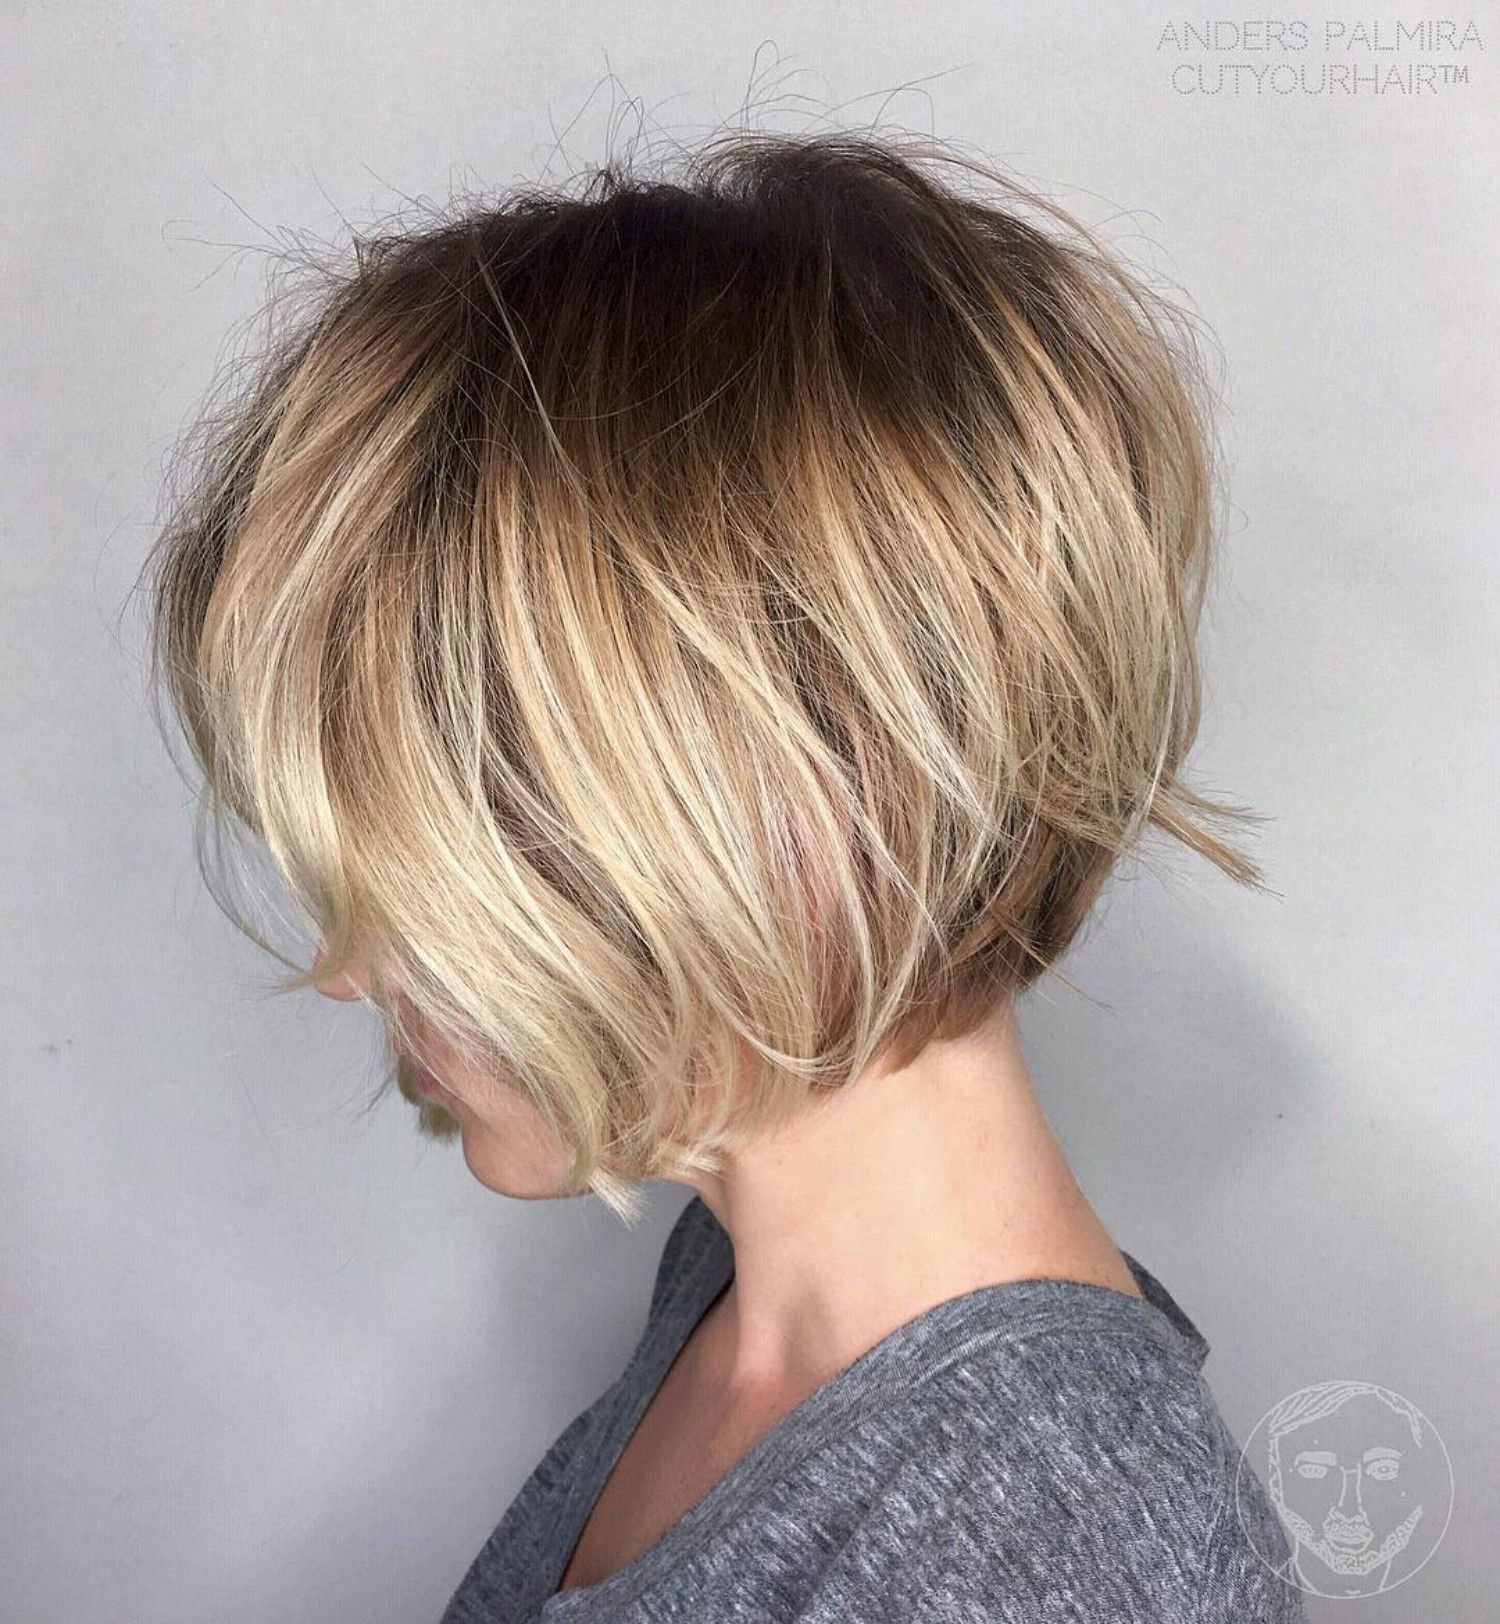 100 Mind Blowing Short Hairstyles For Fine Hair Haircuts For